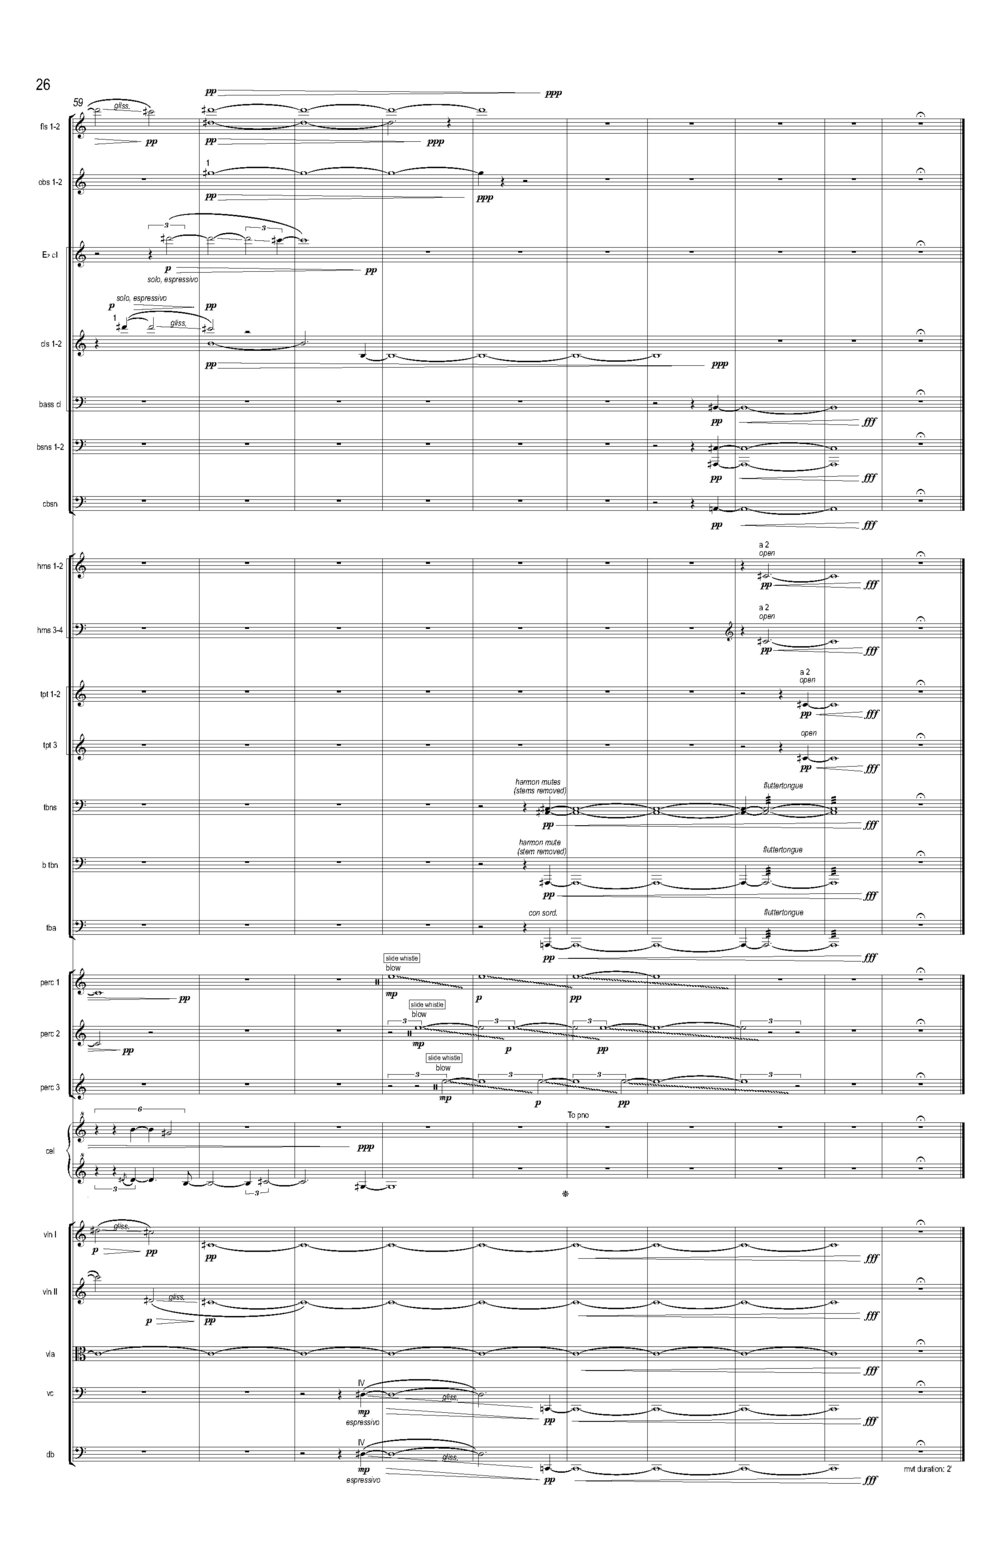 Ciach_Collective Uncommon REVISED_Full Score (Feb 2017)_Seite_32.jpg